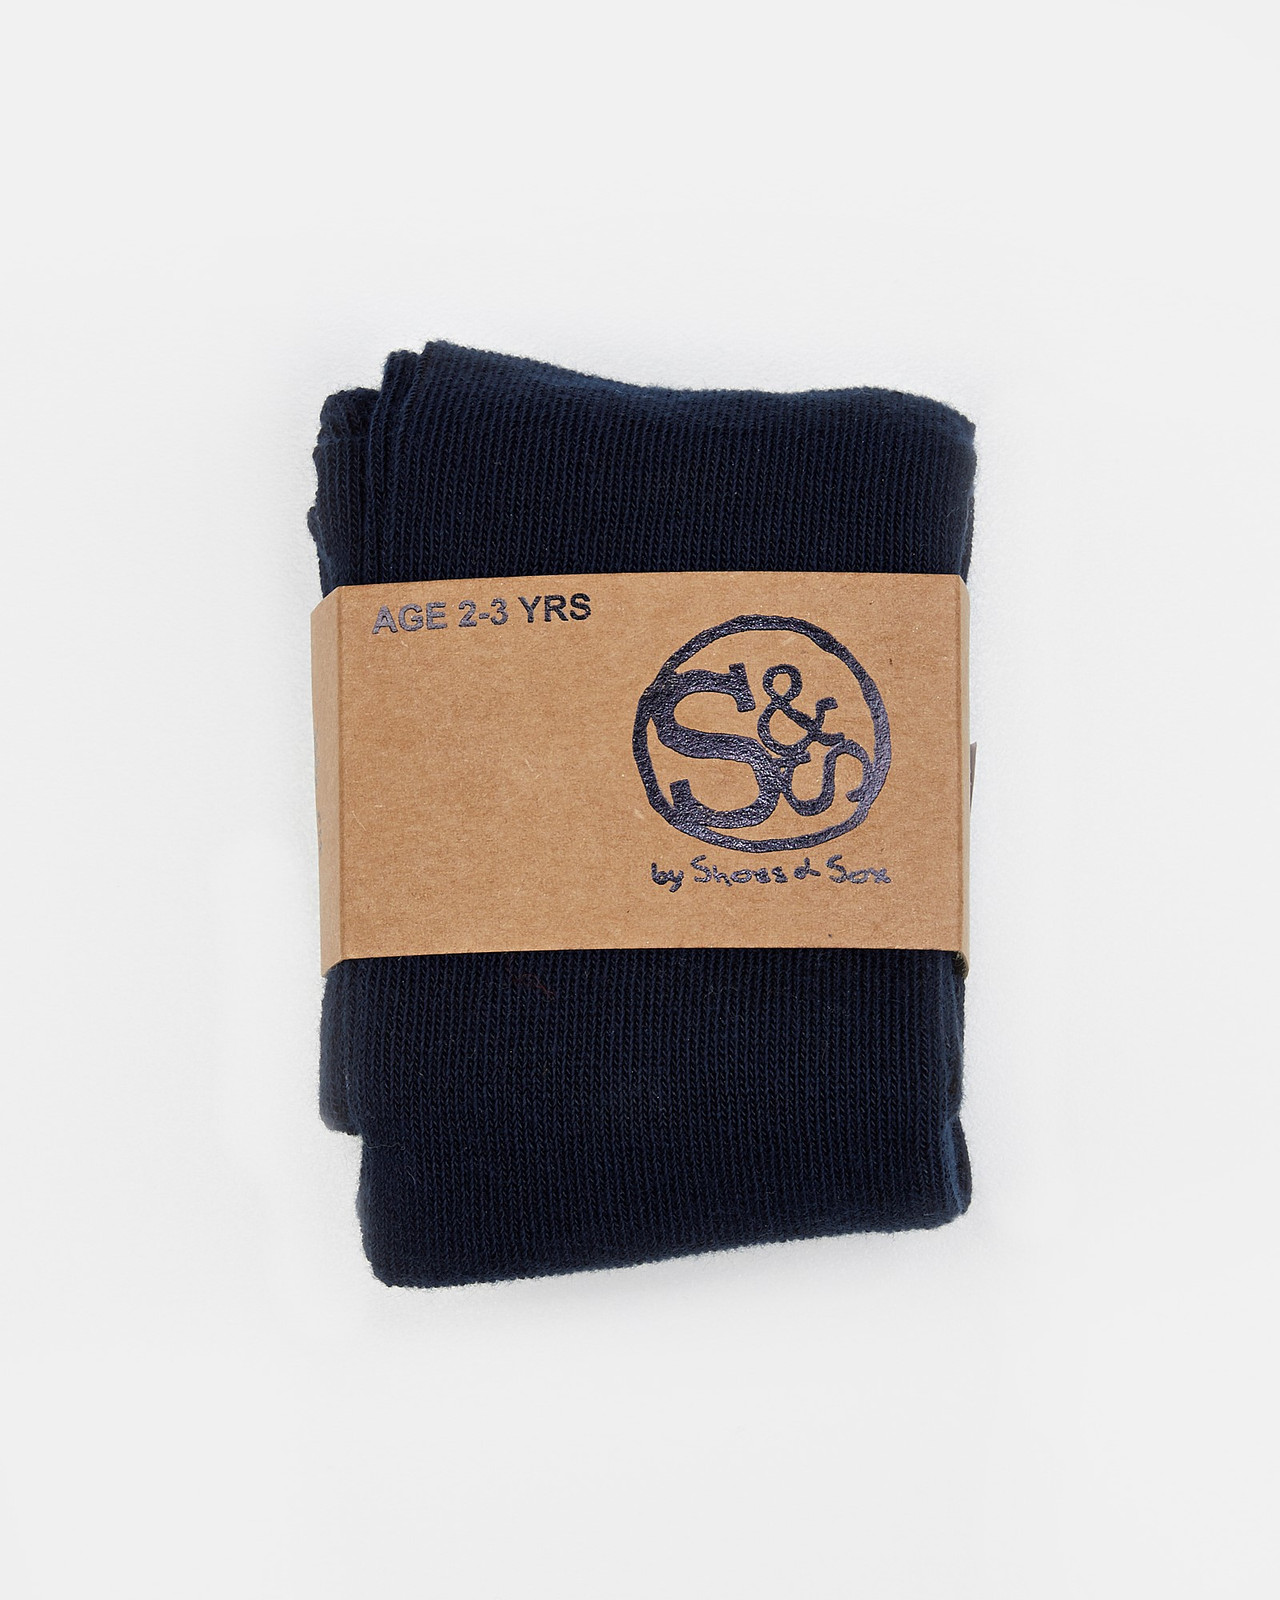 Shoes & Sox Girls COTTON TIGHTS Navy